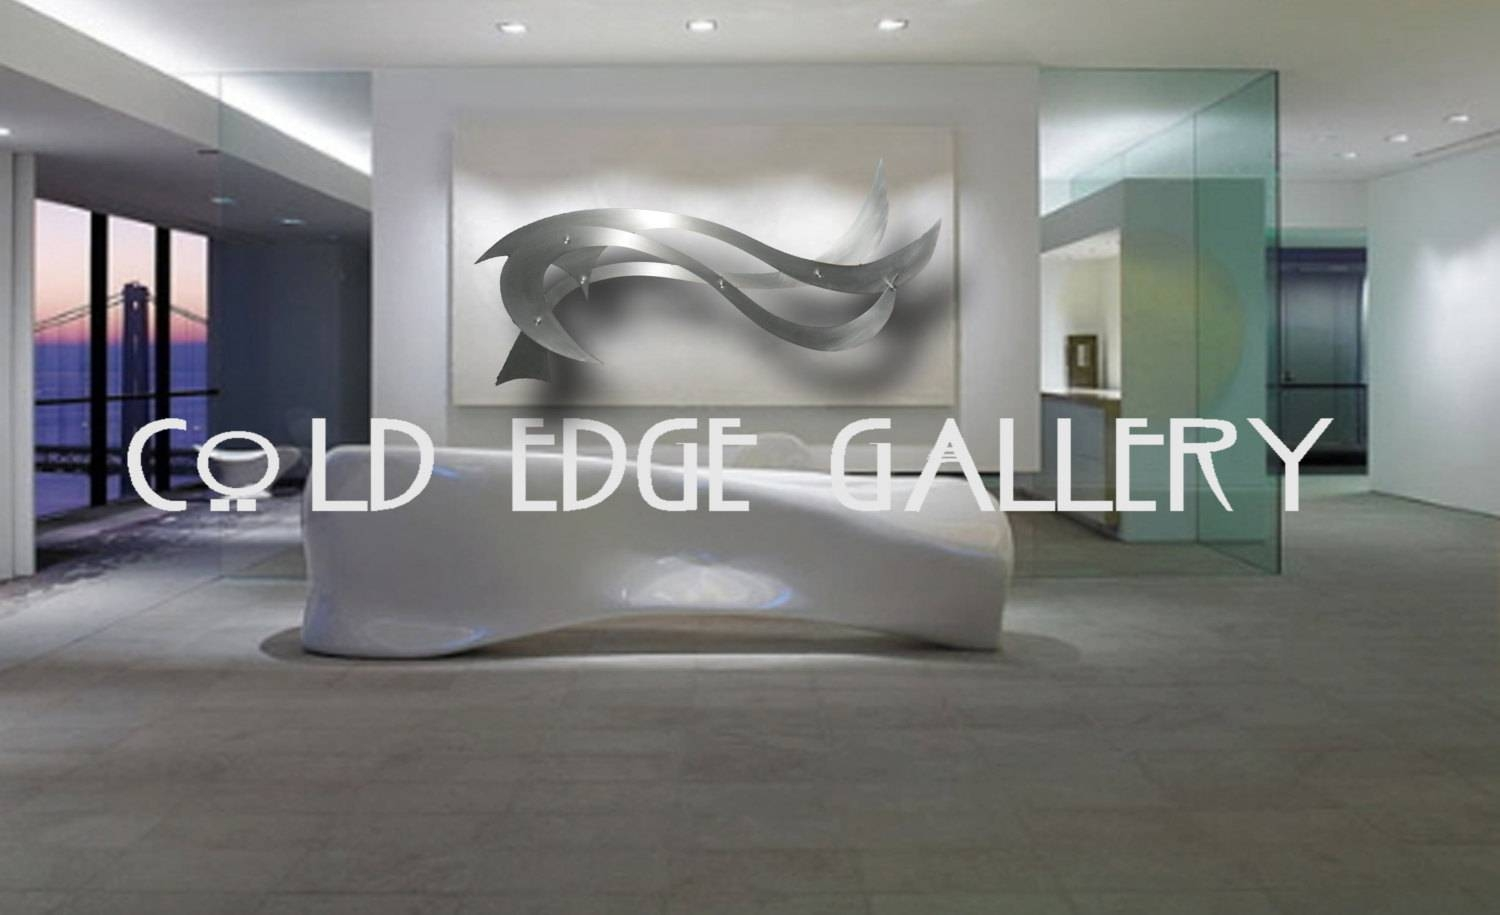 Ocean Breeze Large Metal Wall Art Corporate Wall Art Extra with regard to Most Current Contemporary Metal Wall Art Sculptures